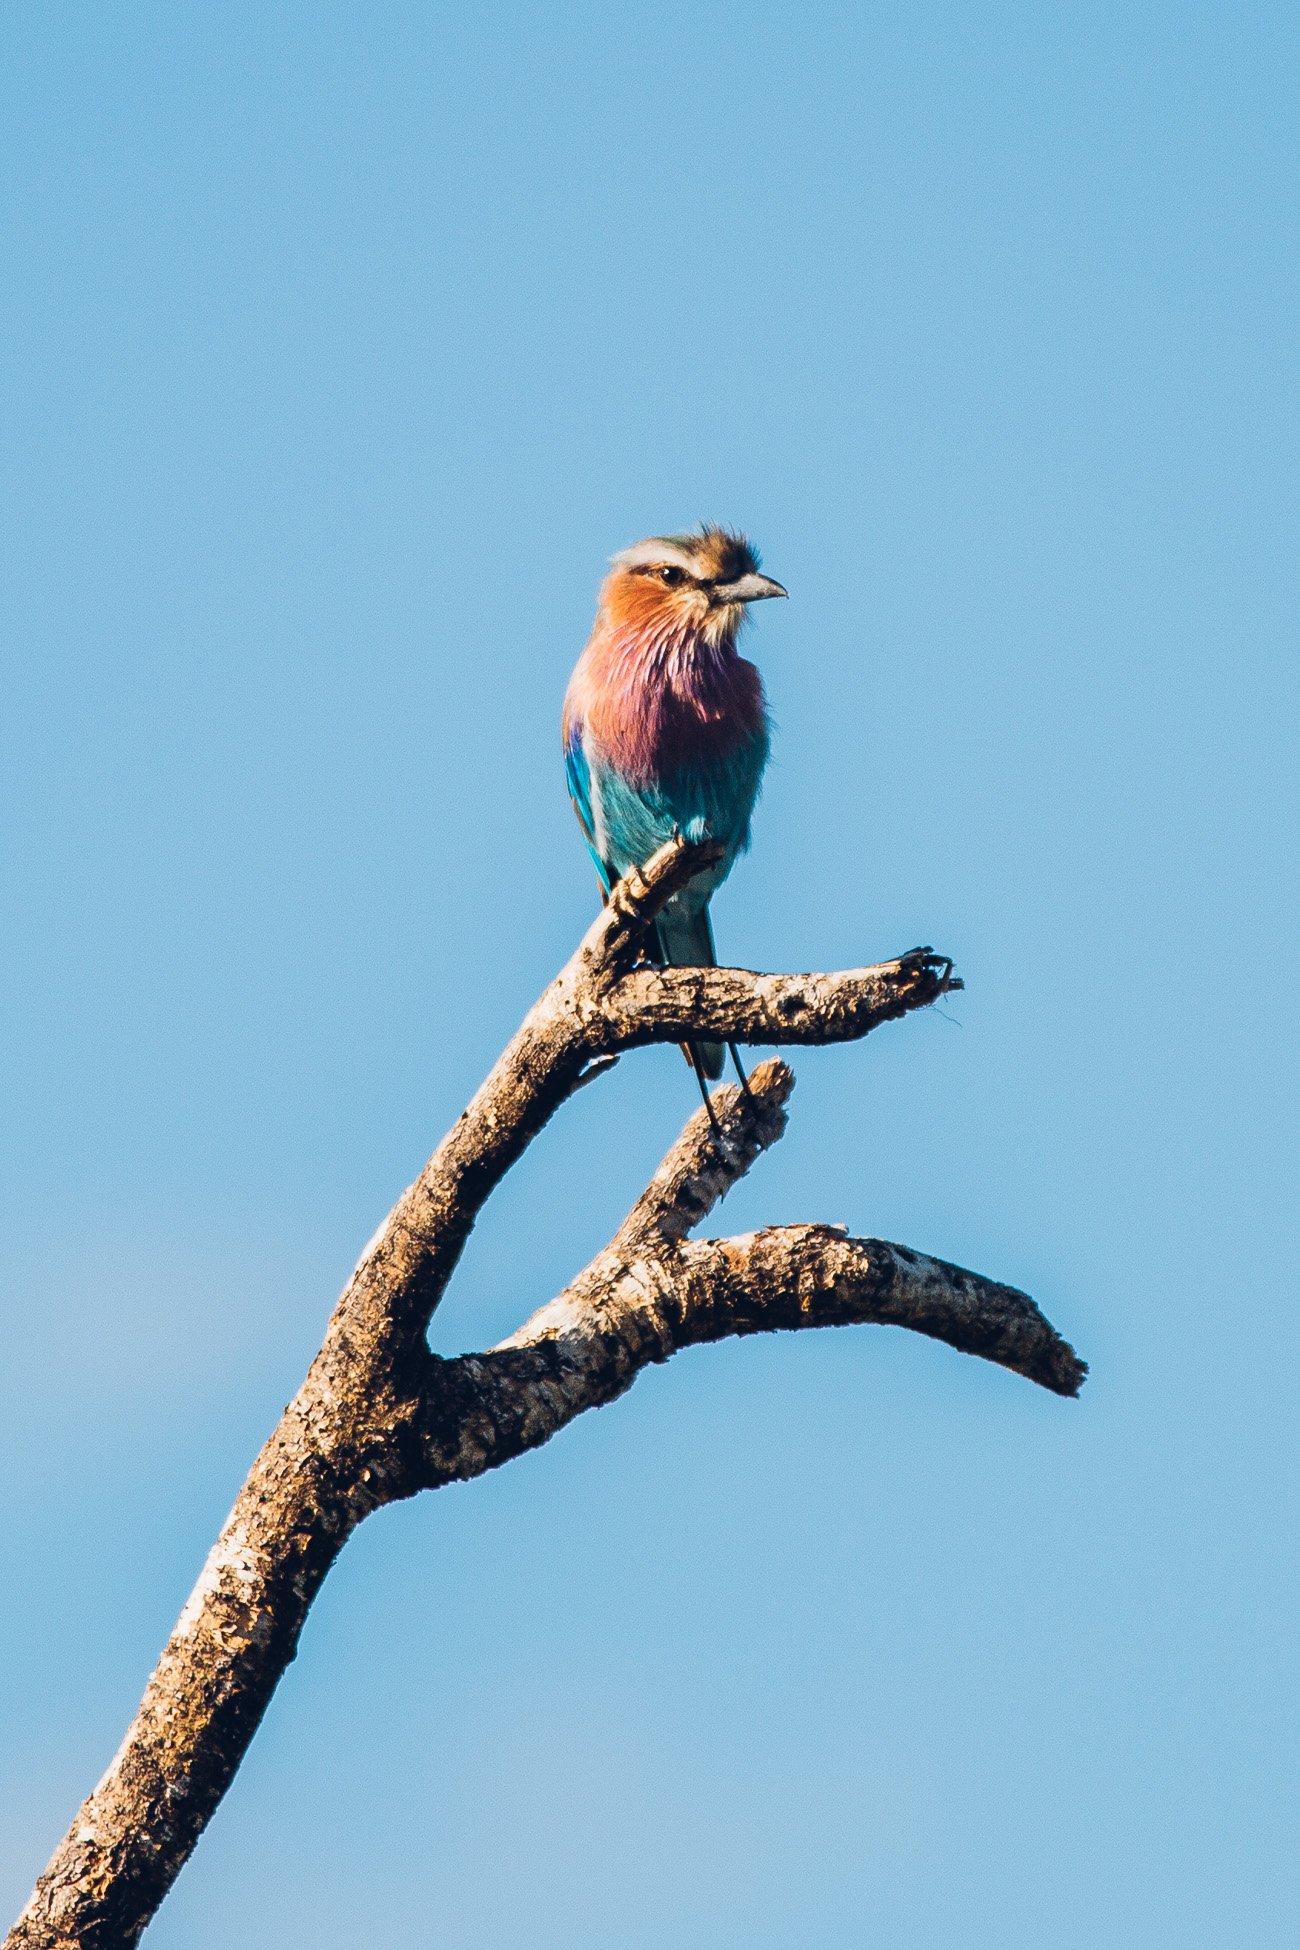 Lilac-breasted roller at a Safari in Namibia